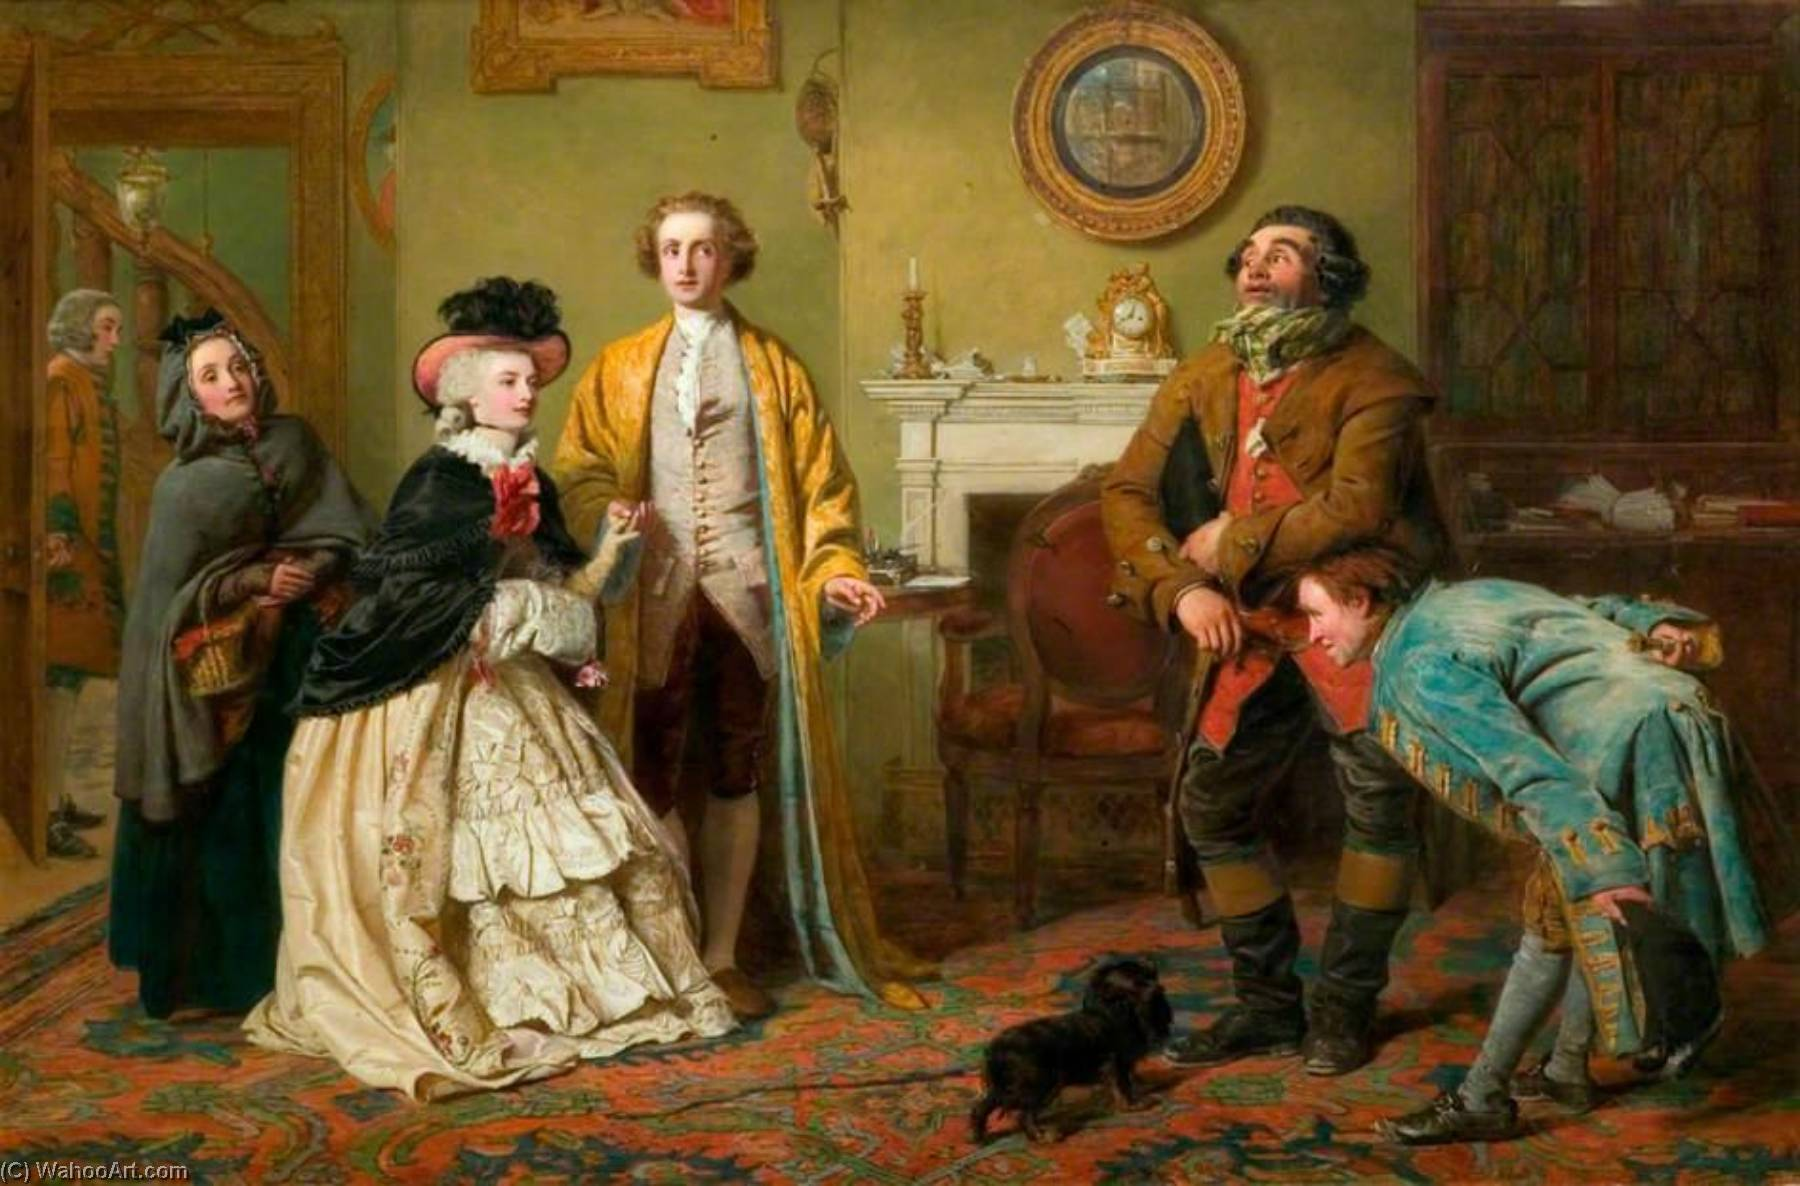 mr honeywood Introduce gli ufficiali giudiziari perdere Richland come i suoi amici ( conosciuto anche come rom oliver Goldsmith's 'The Bene Di natura Man' , atto iii , Scena 1 ), olio su tela di William Powell Frith (1819-1909, United Kingdom)